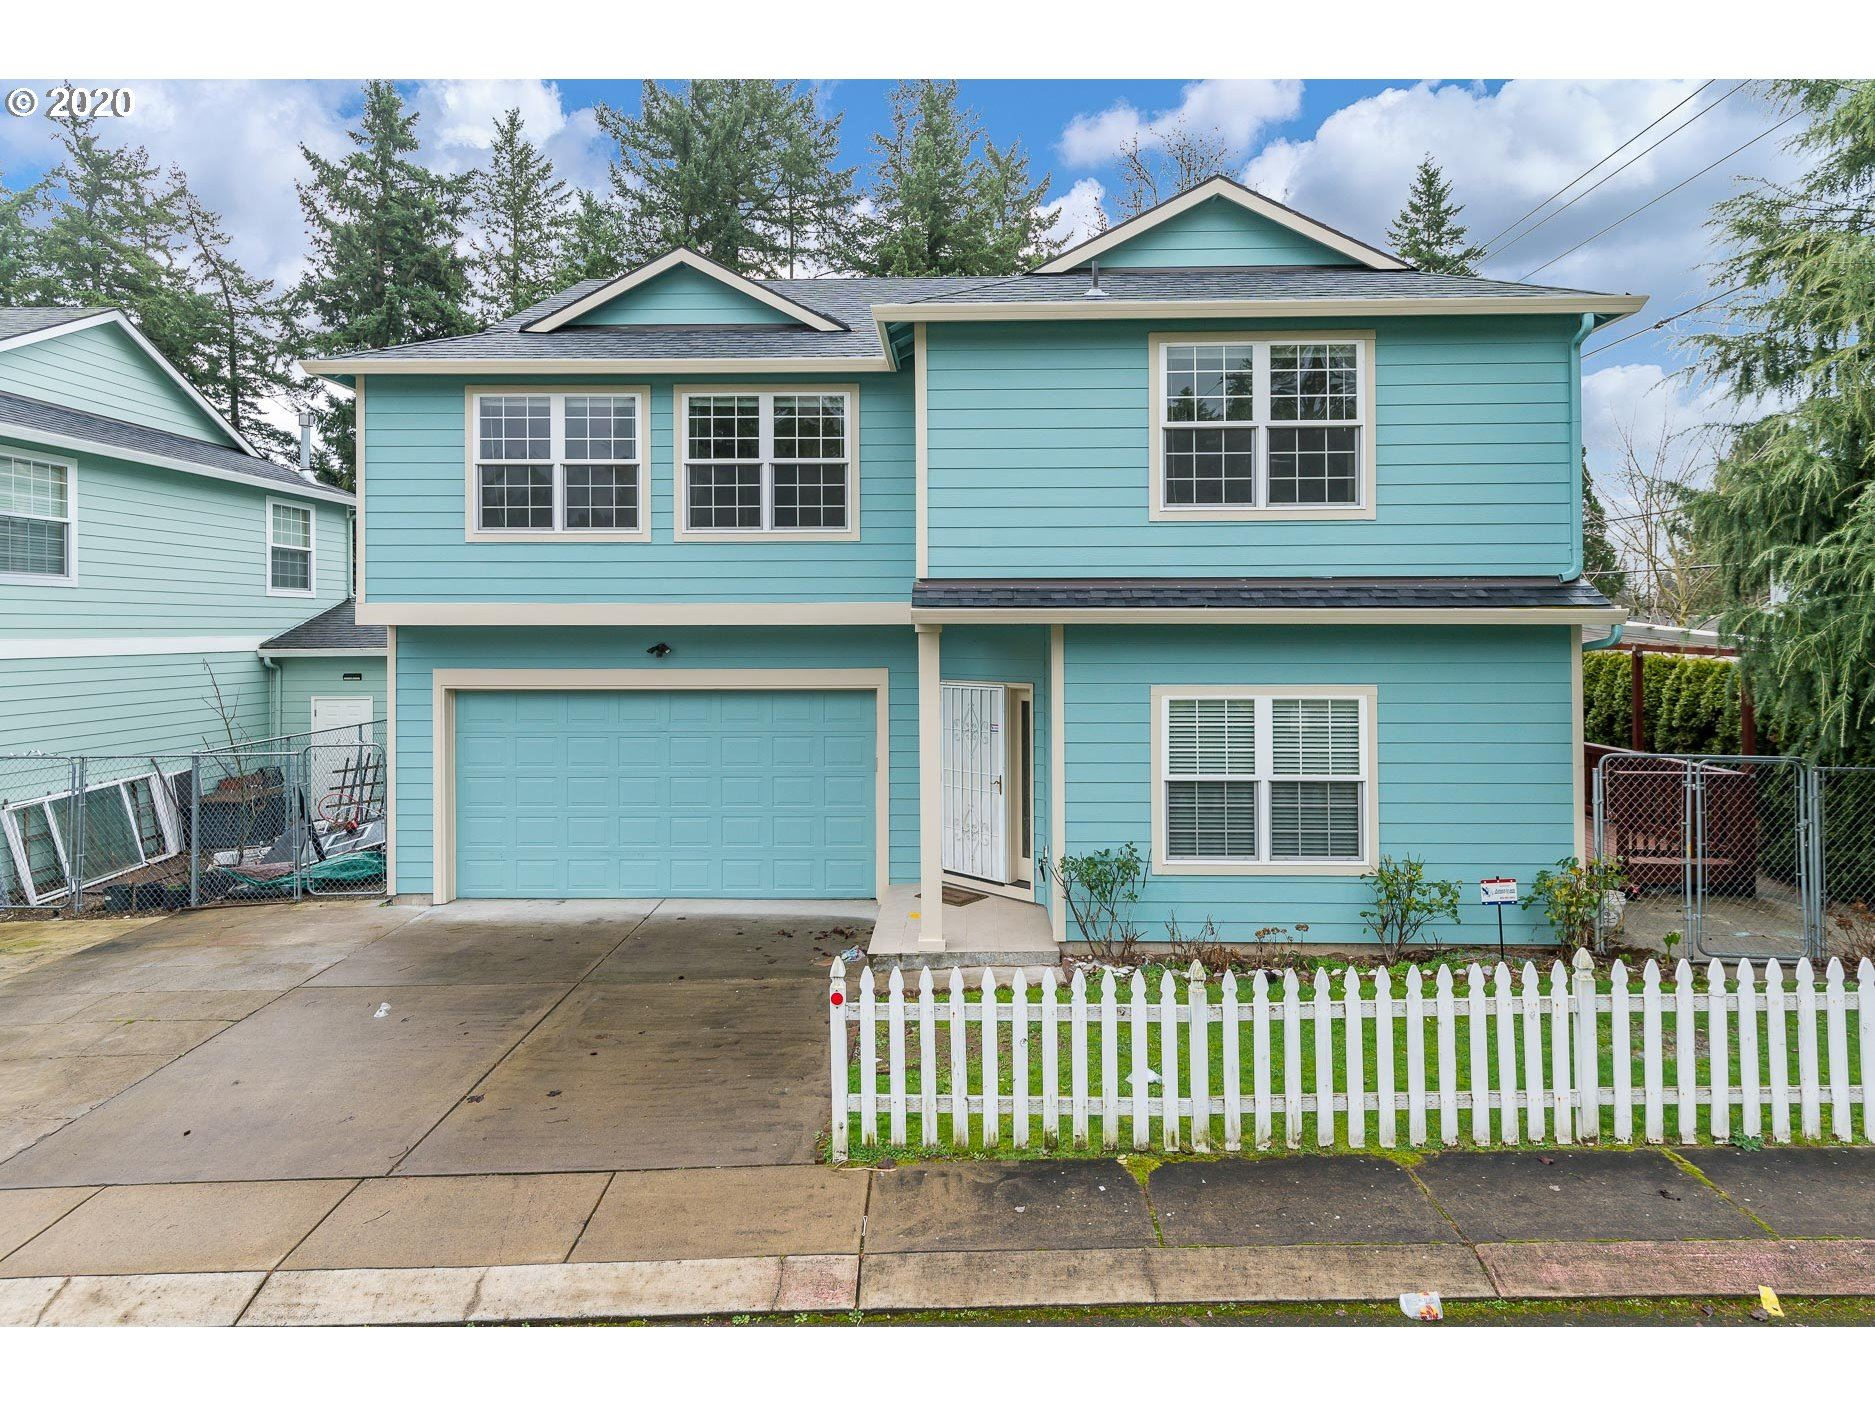 2328 SE 139TH AVE, Portland, OR 97233 - MLS#: 19508293